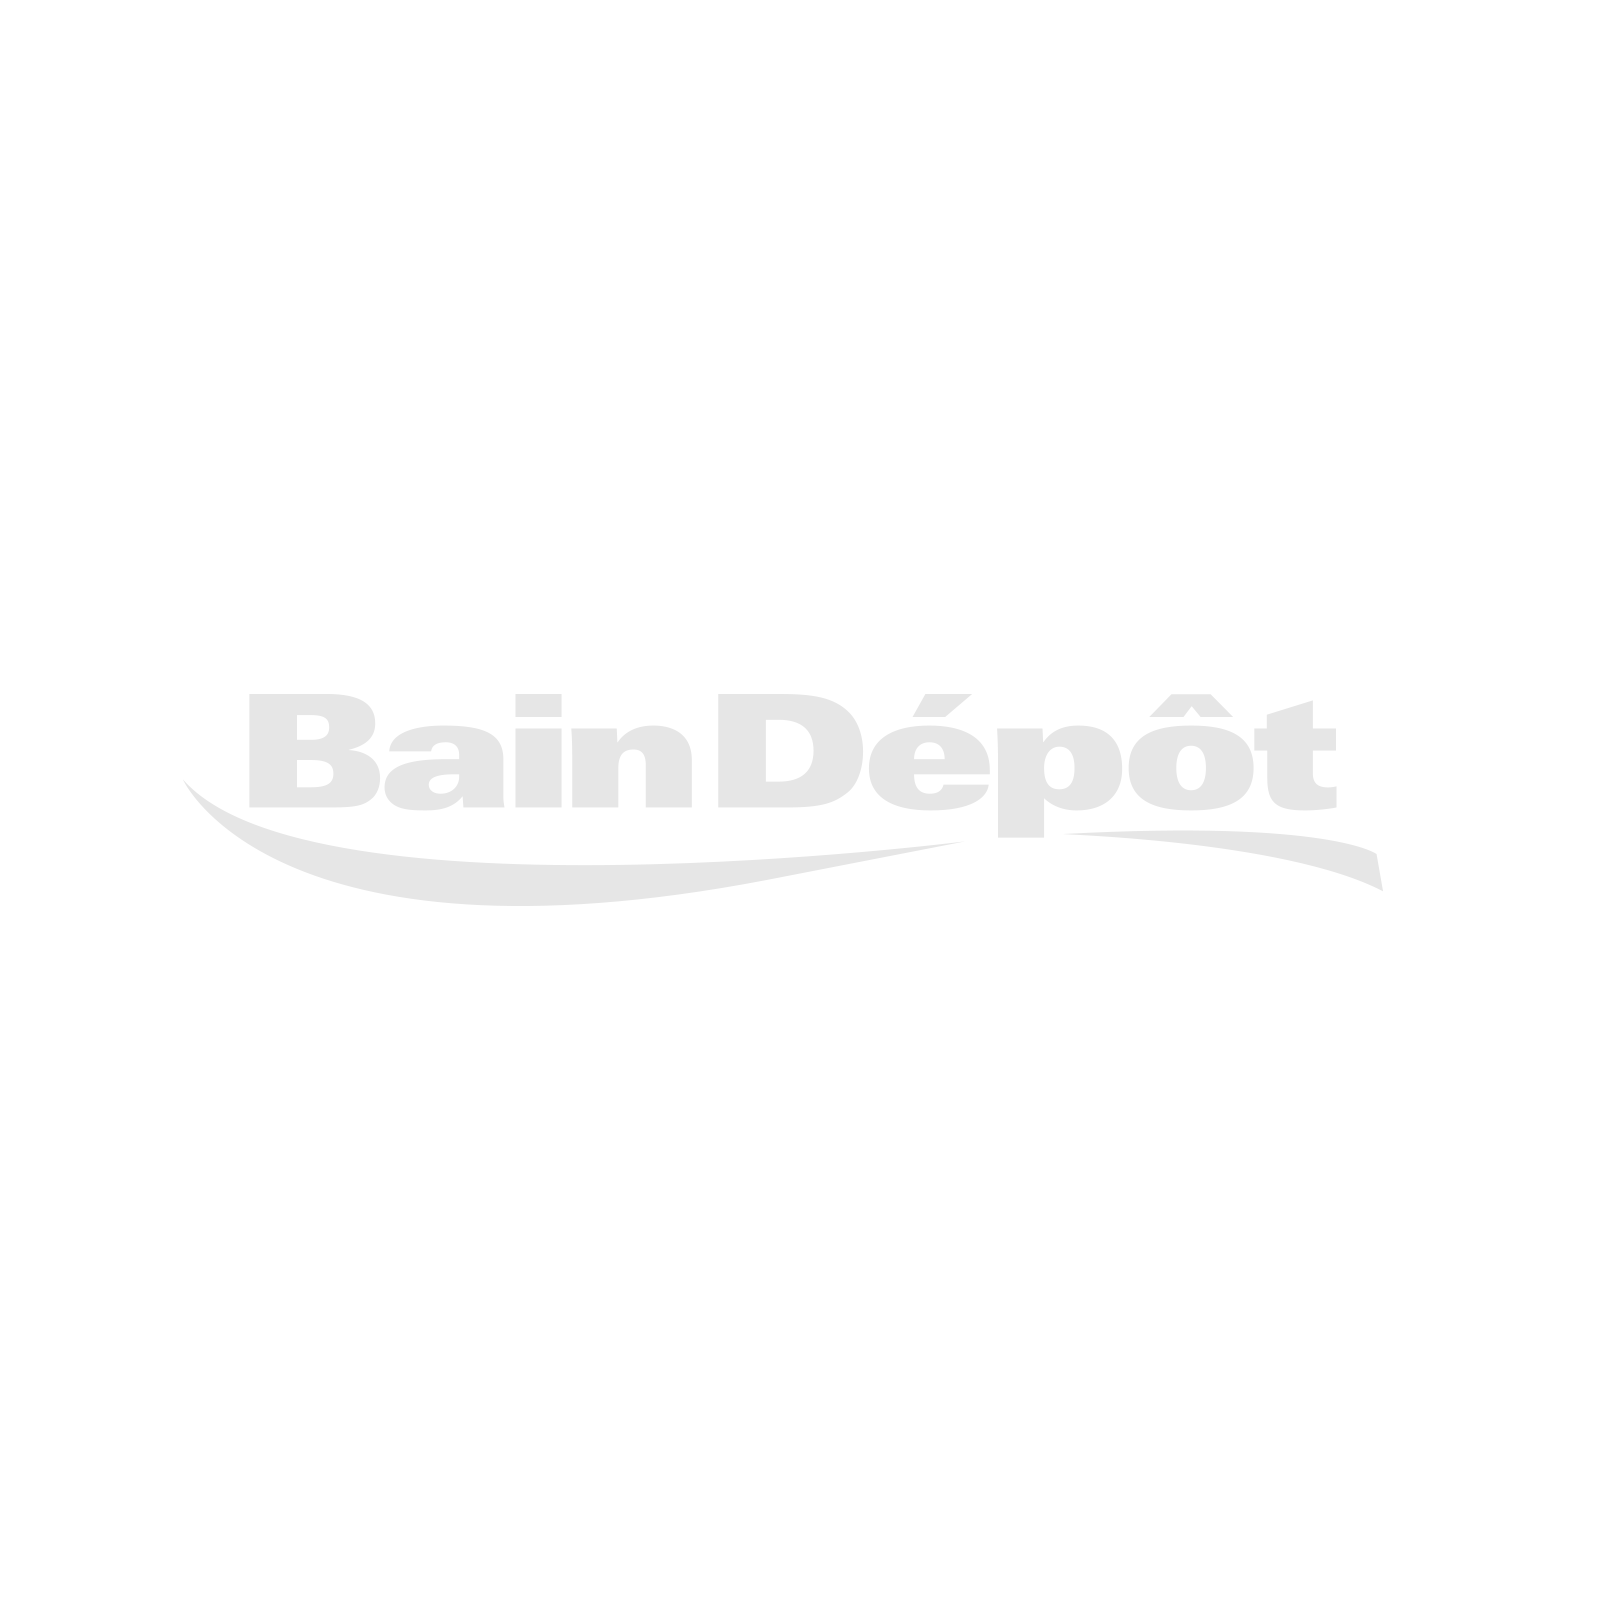 "42"" x 34"" rectangular shower base for right corner installation"